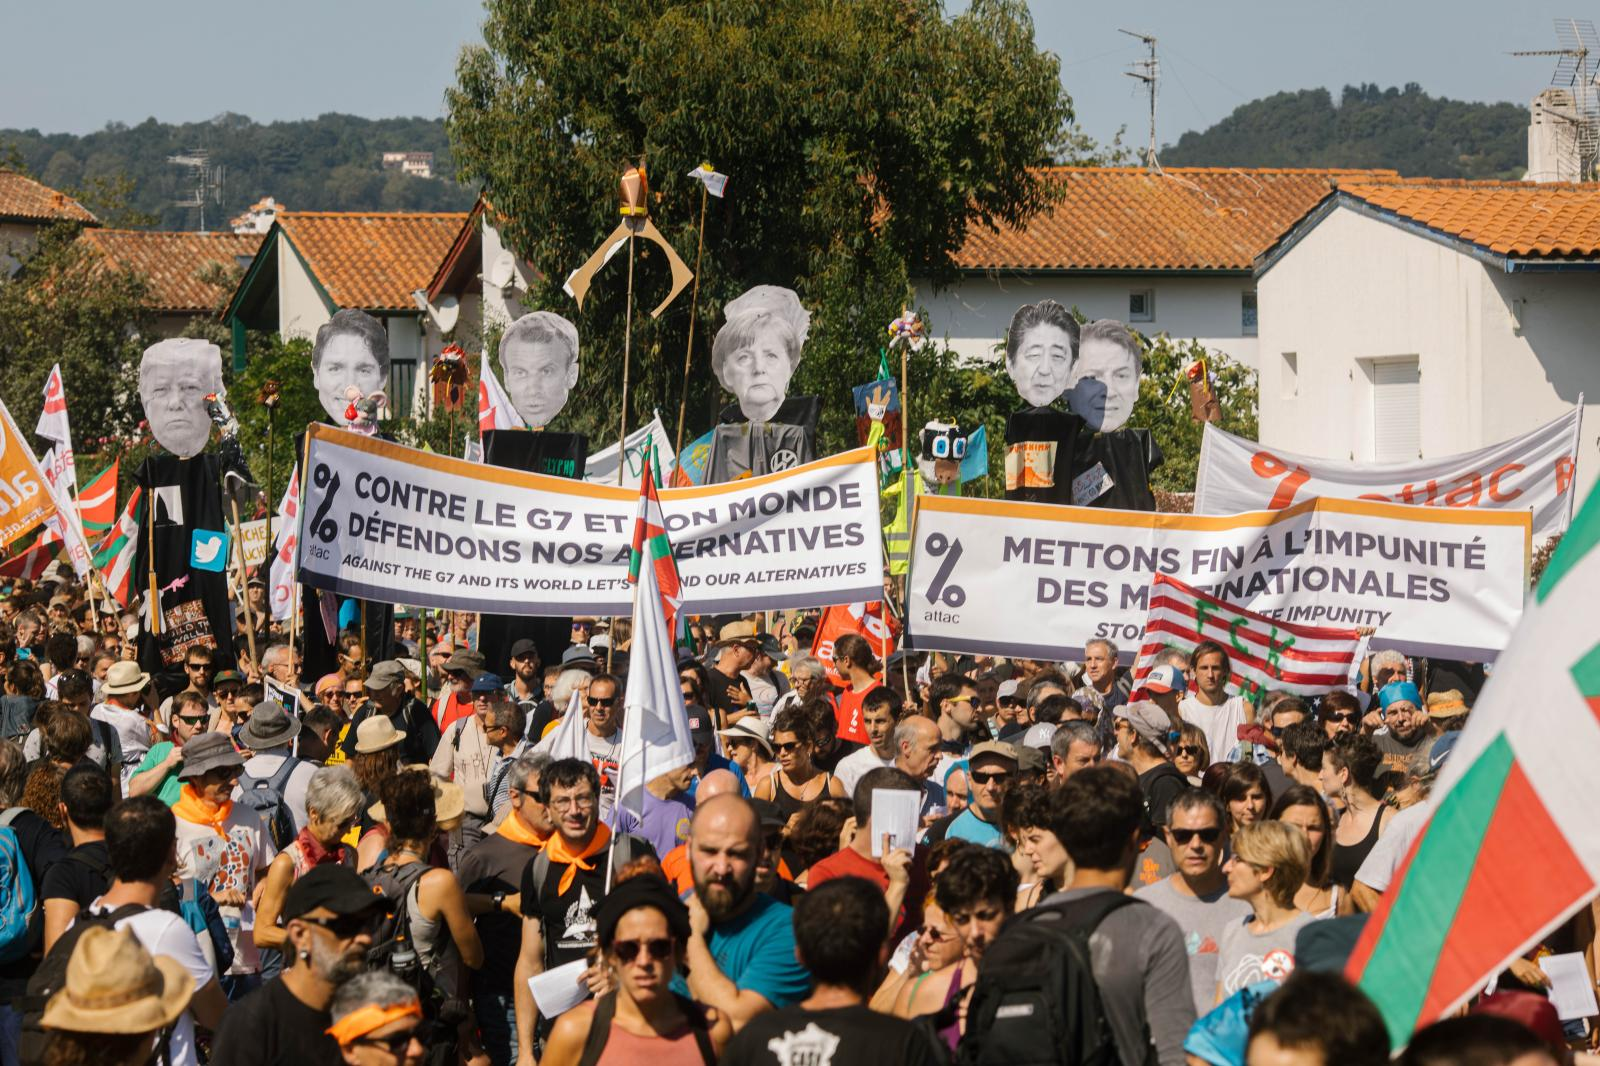 2019-08-24 - Puppets of the G7 leaders over mass demonstration.